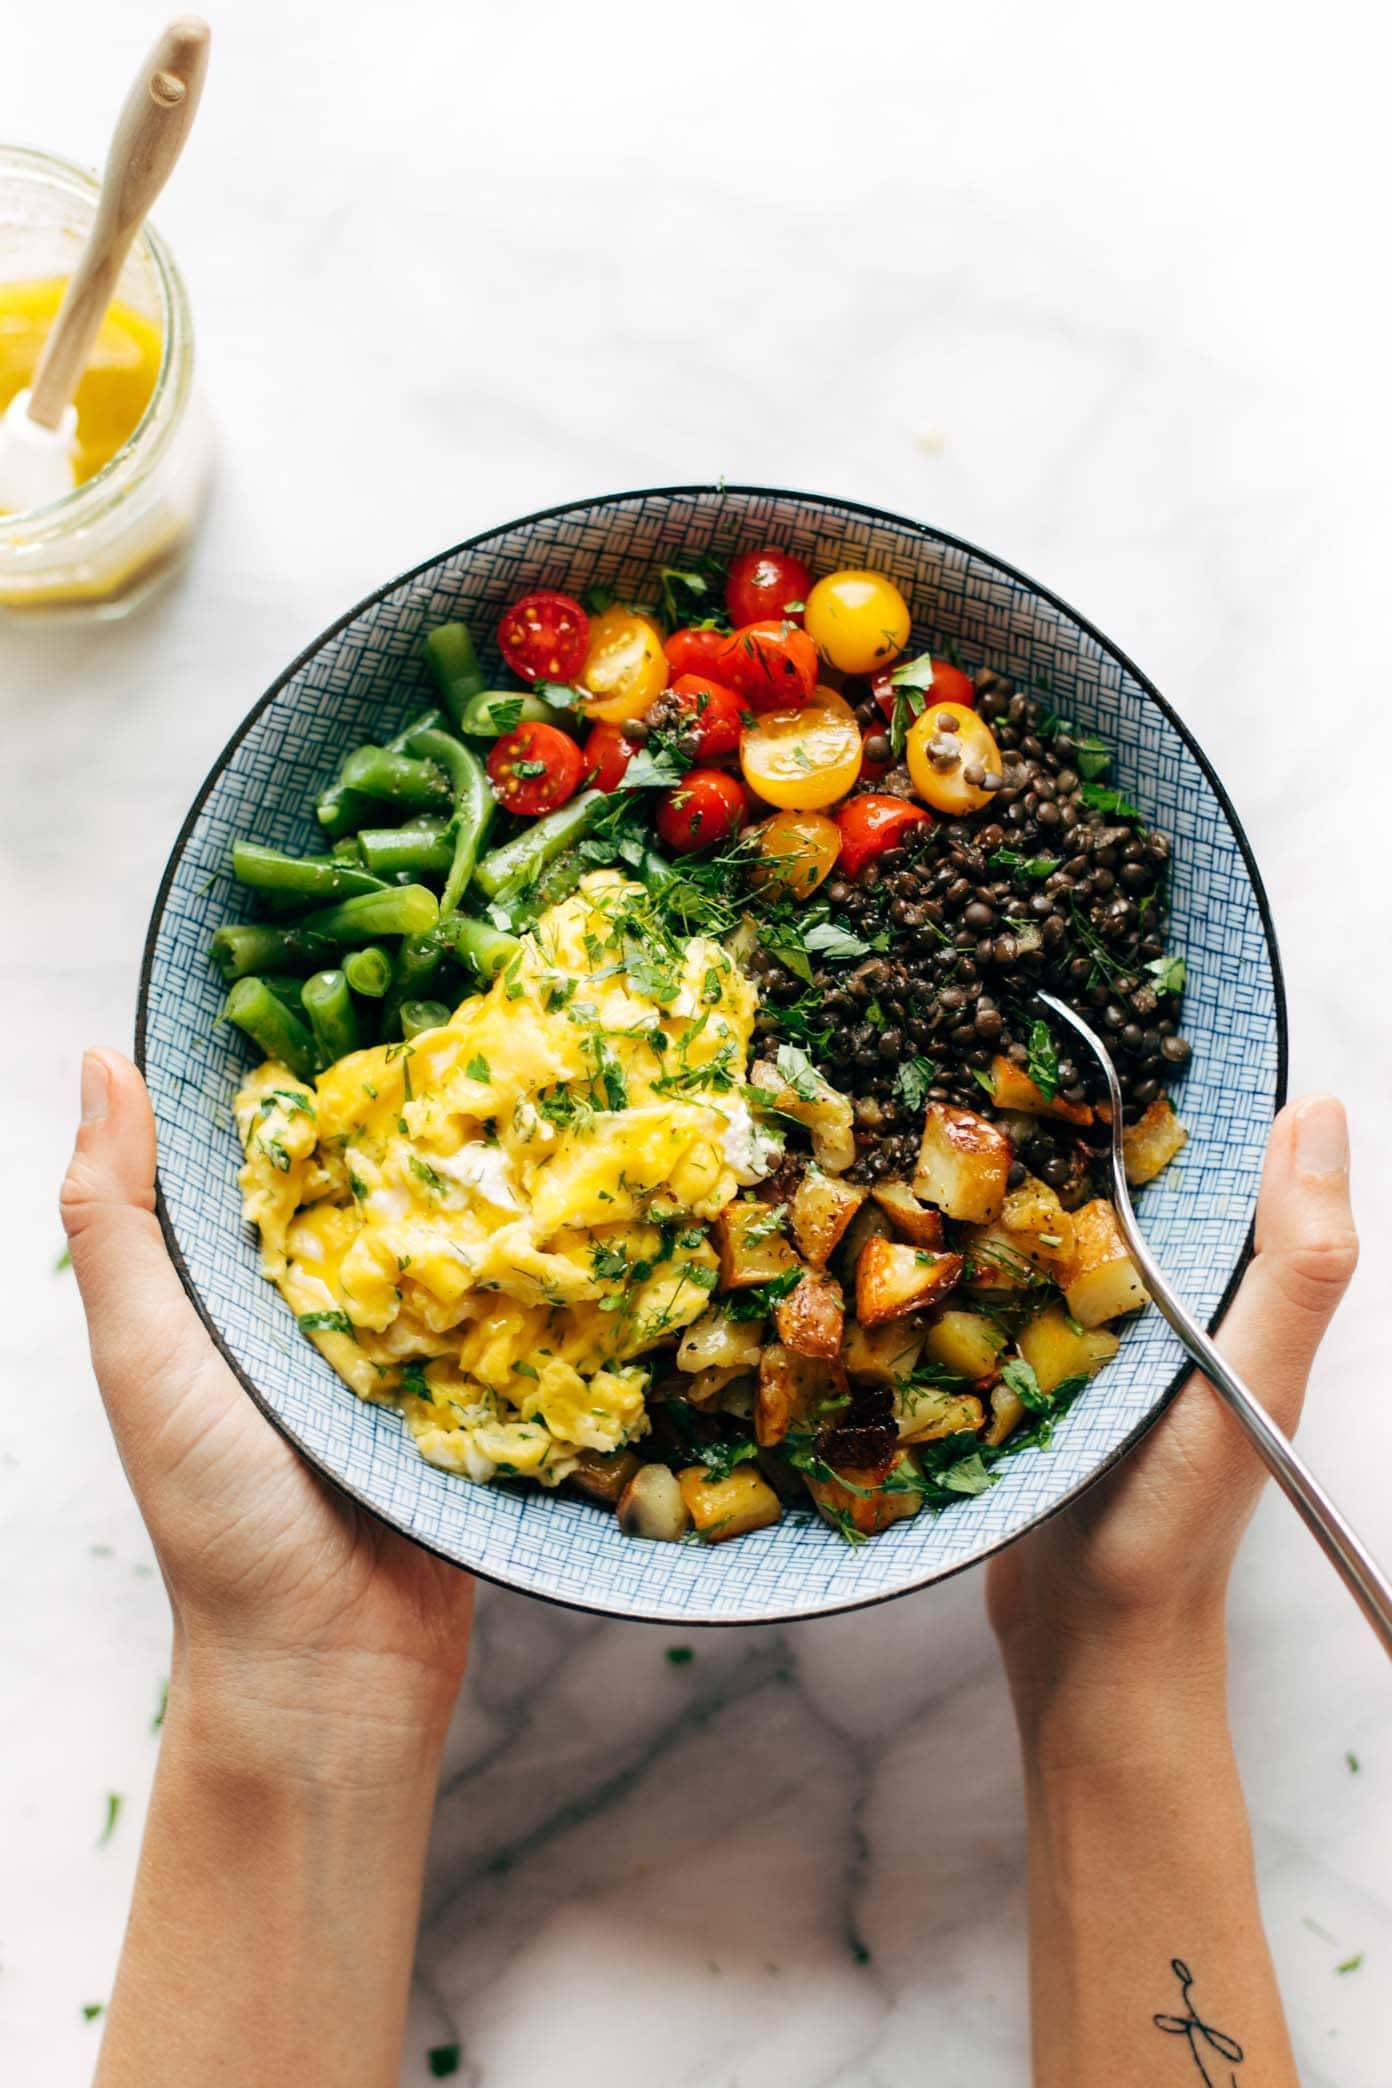 Sunshine Lentil Bowls for a summery clean eating reset! with garden produce like green beans, tomatoes, herbs, roasted potatoes, lentils, goat cheese, and soft scrambled eggs. Gluten free, vegetarian. | pinchofyum.com